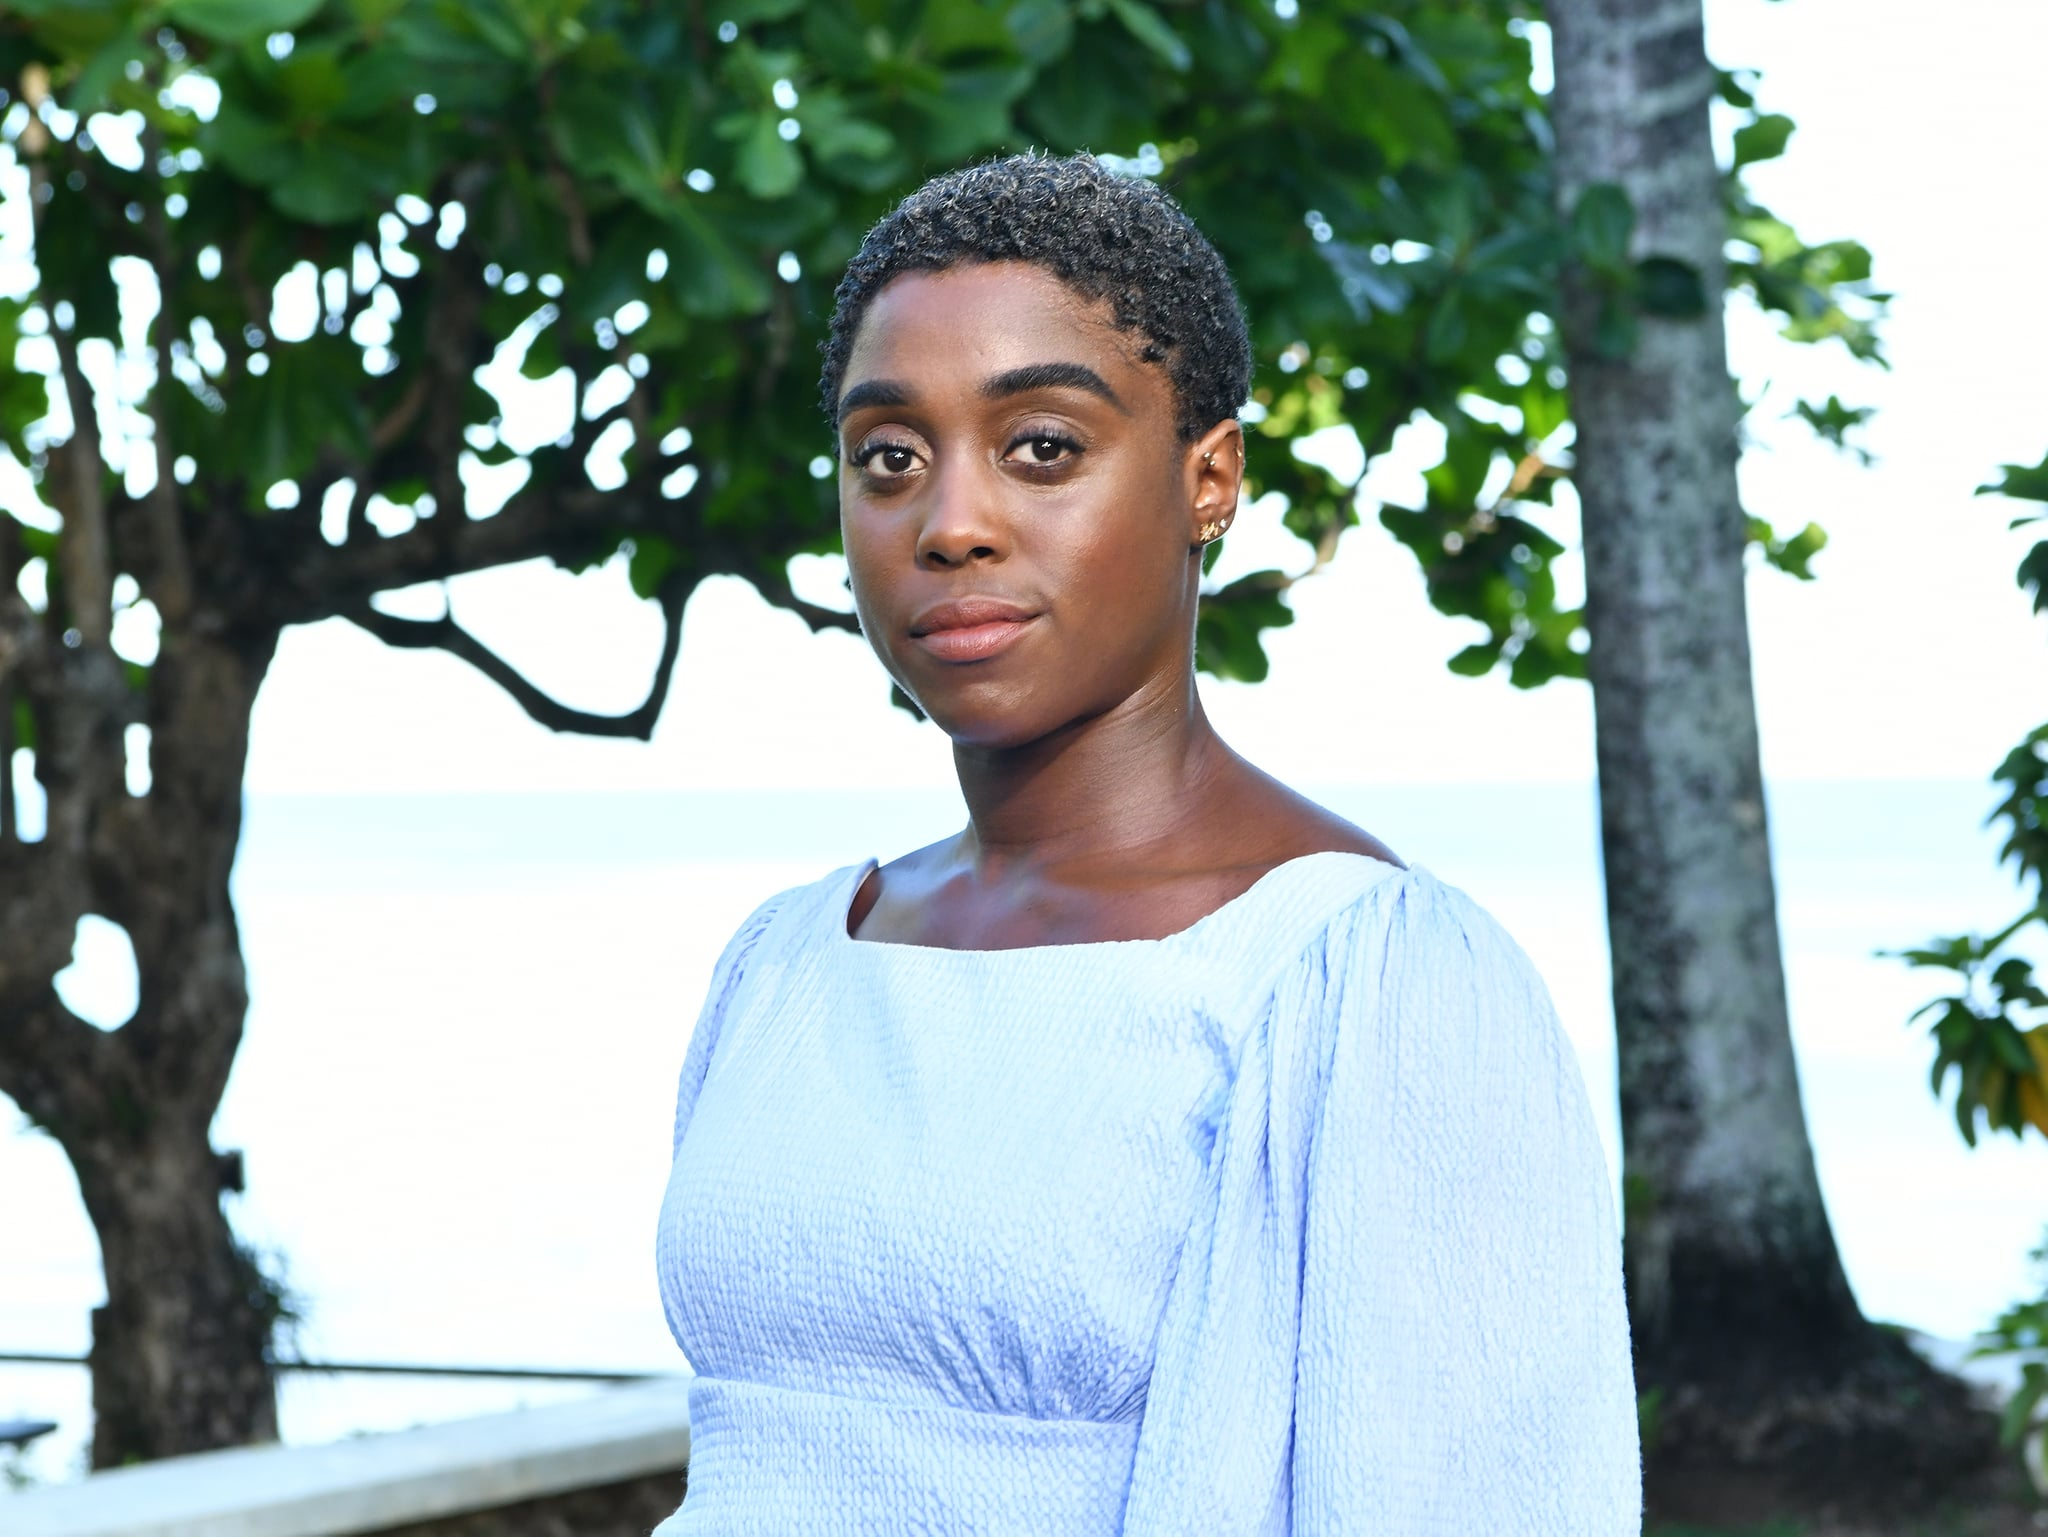 MONTEGO BAY, JAMAICA - APRIL 25:  Cast member Lashana Lynch attends the